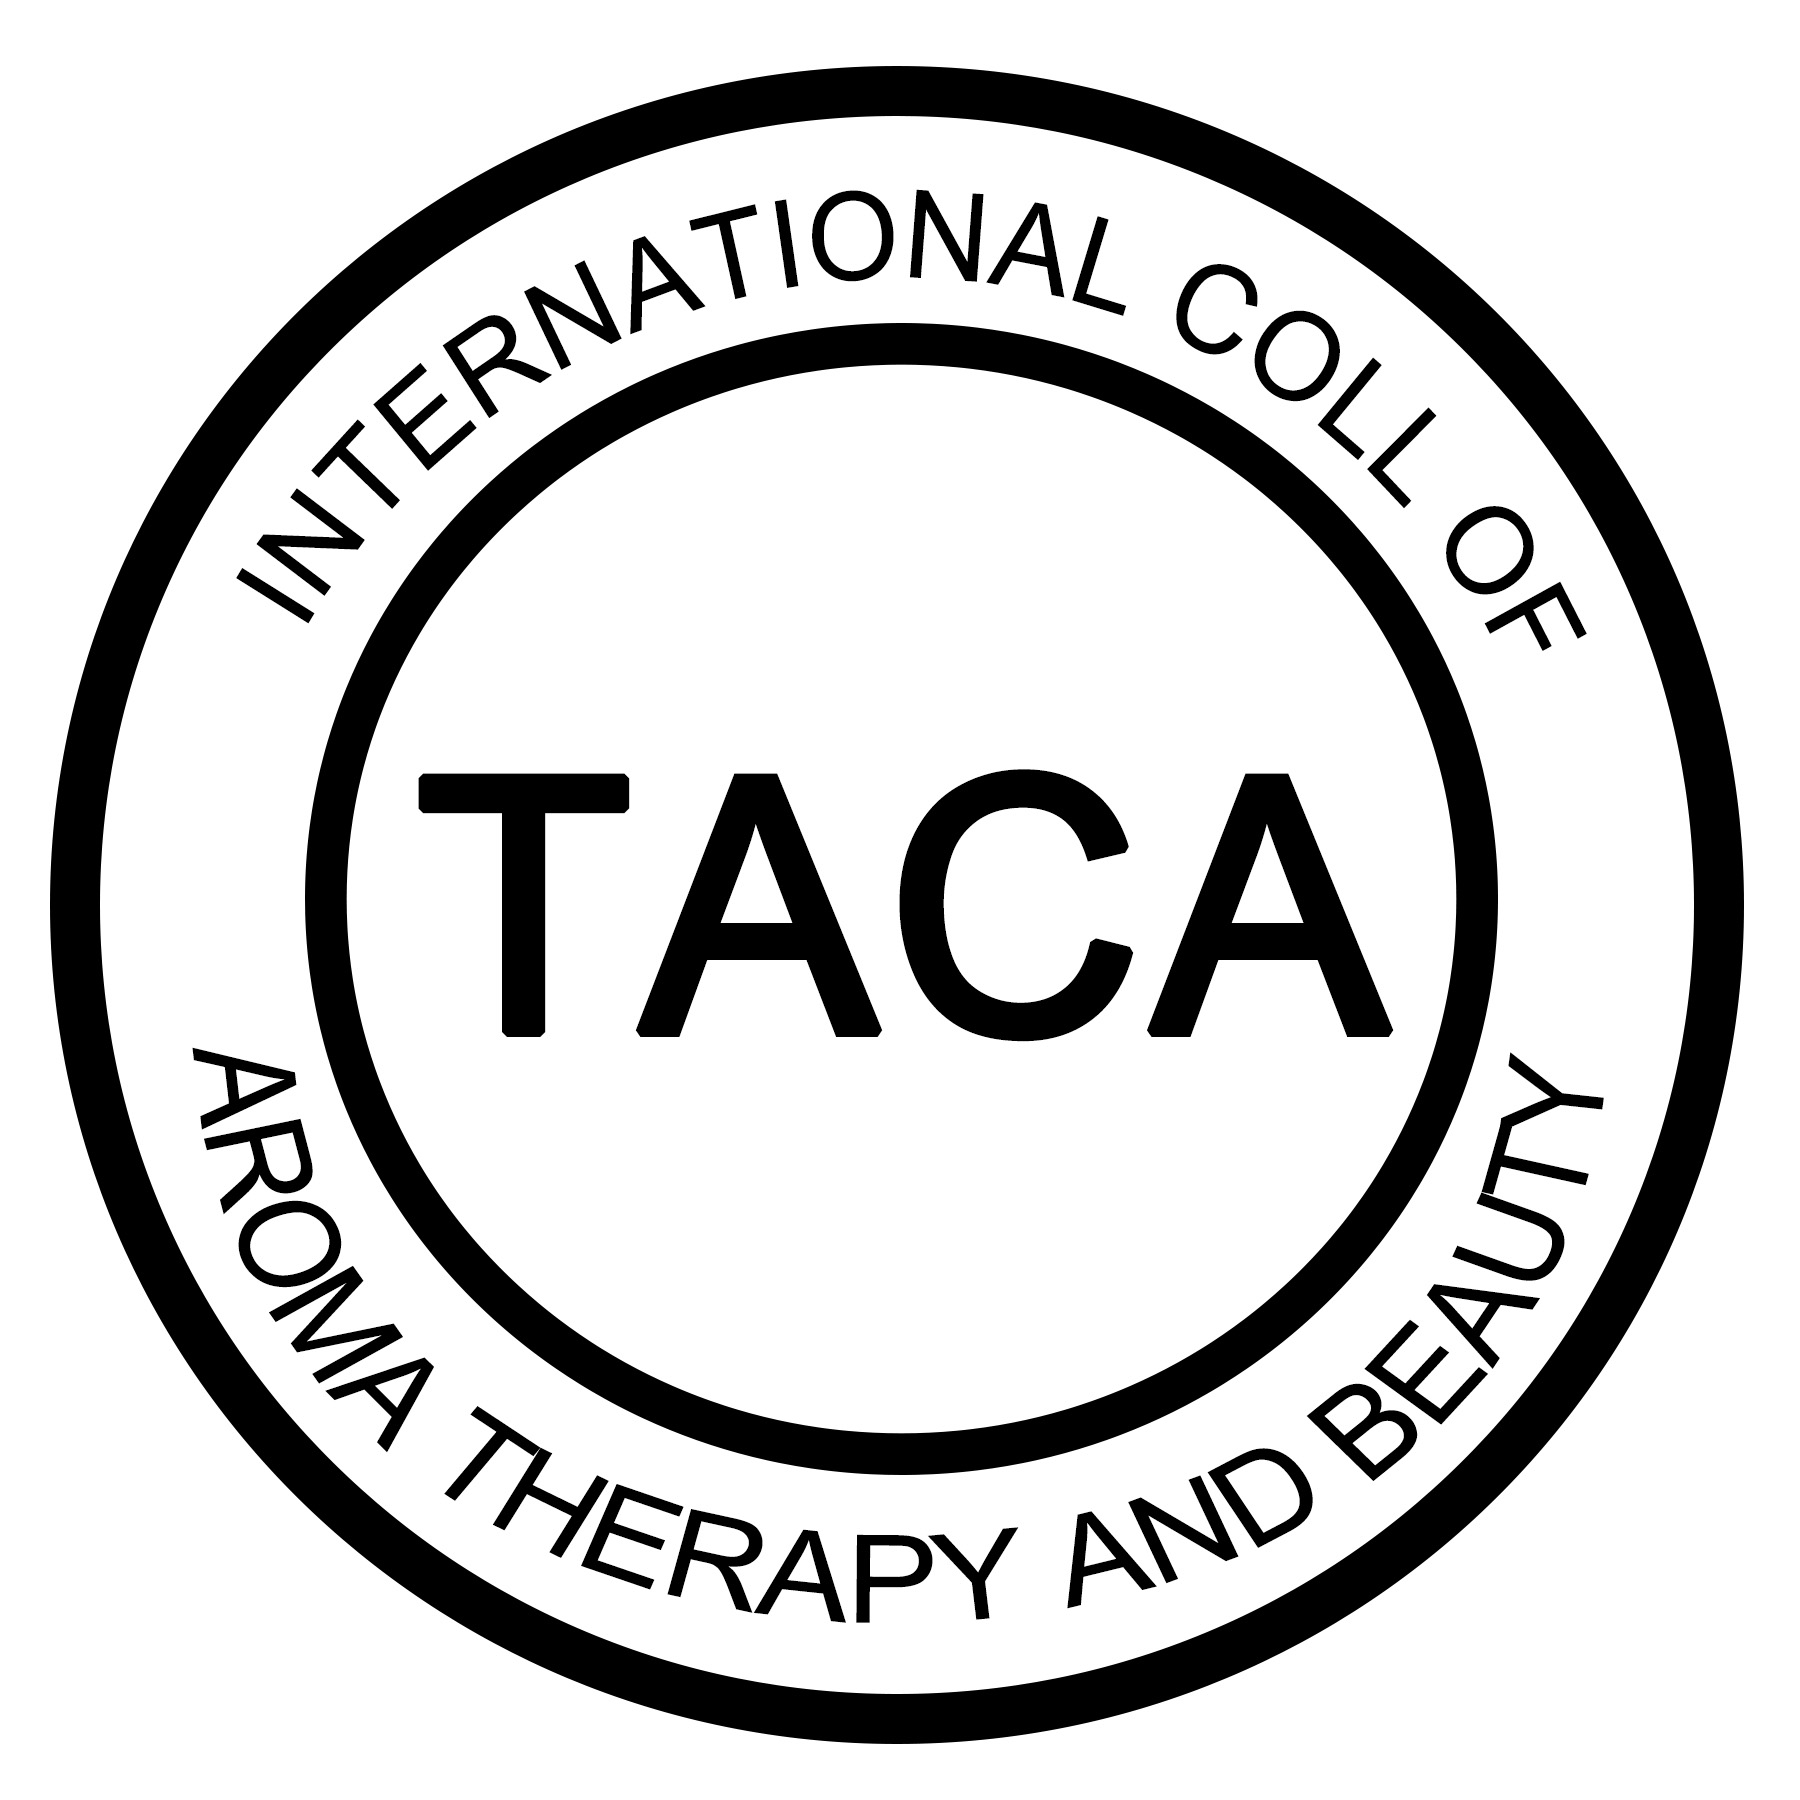 TACA International college of Aromatherapy and Beauty